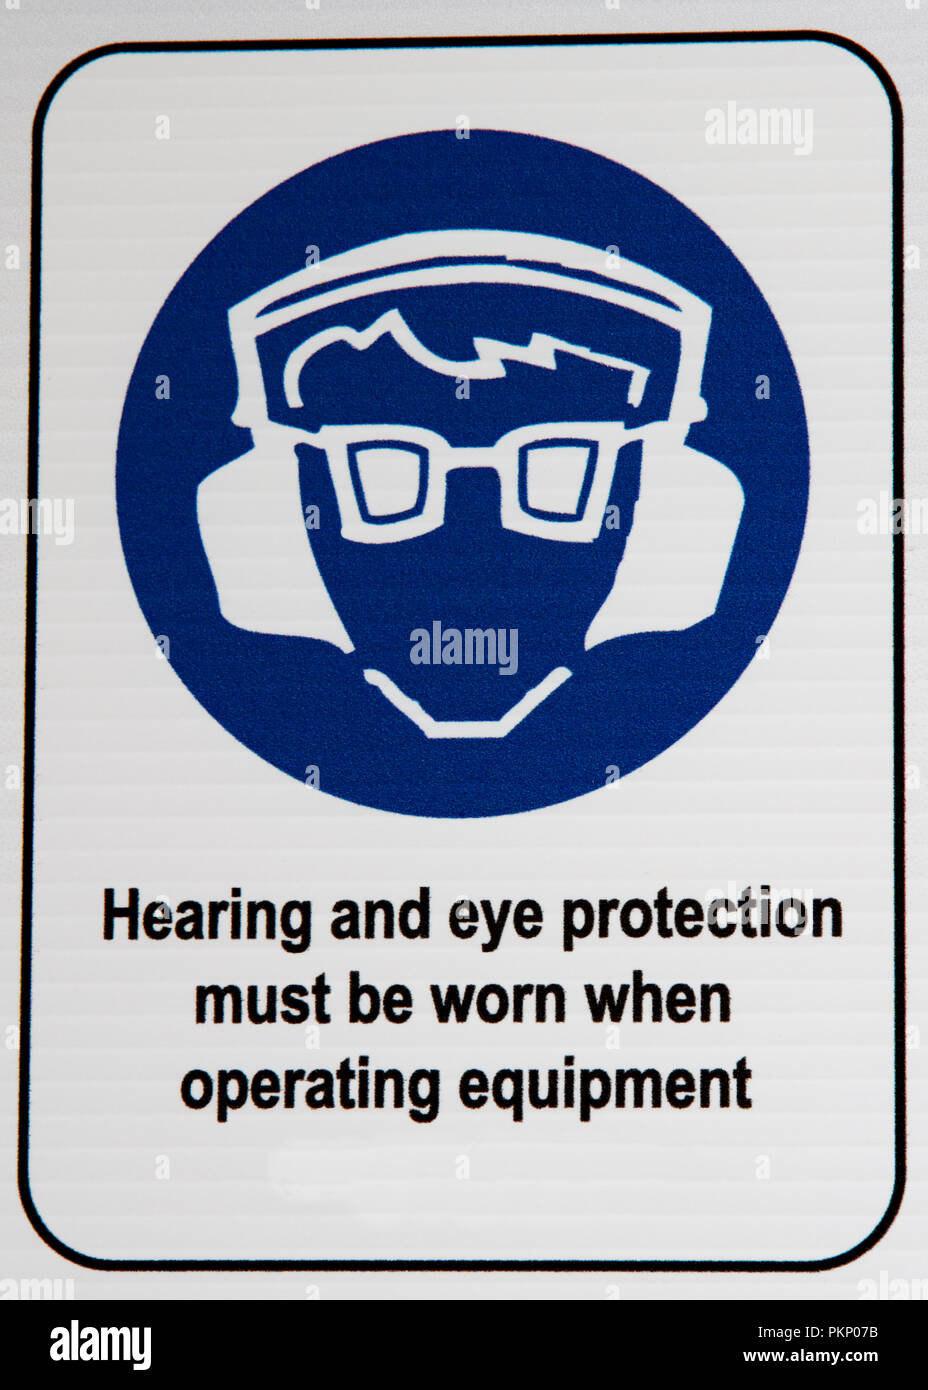 Hearing and Eye Protection sign at a construction site. - Stock Image